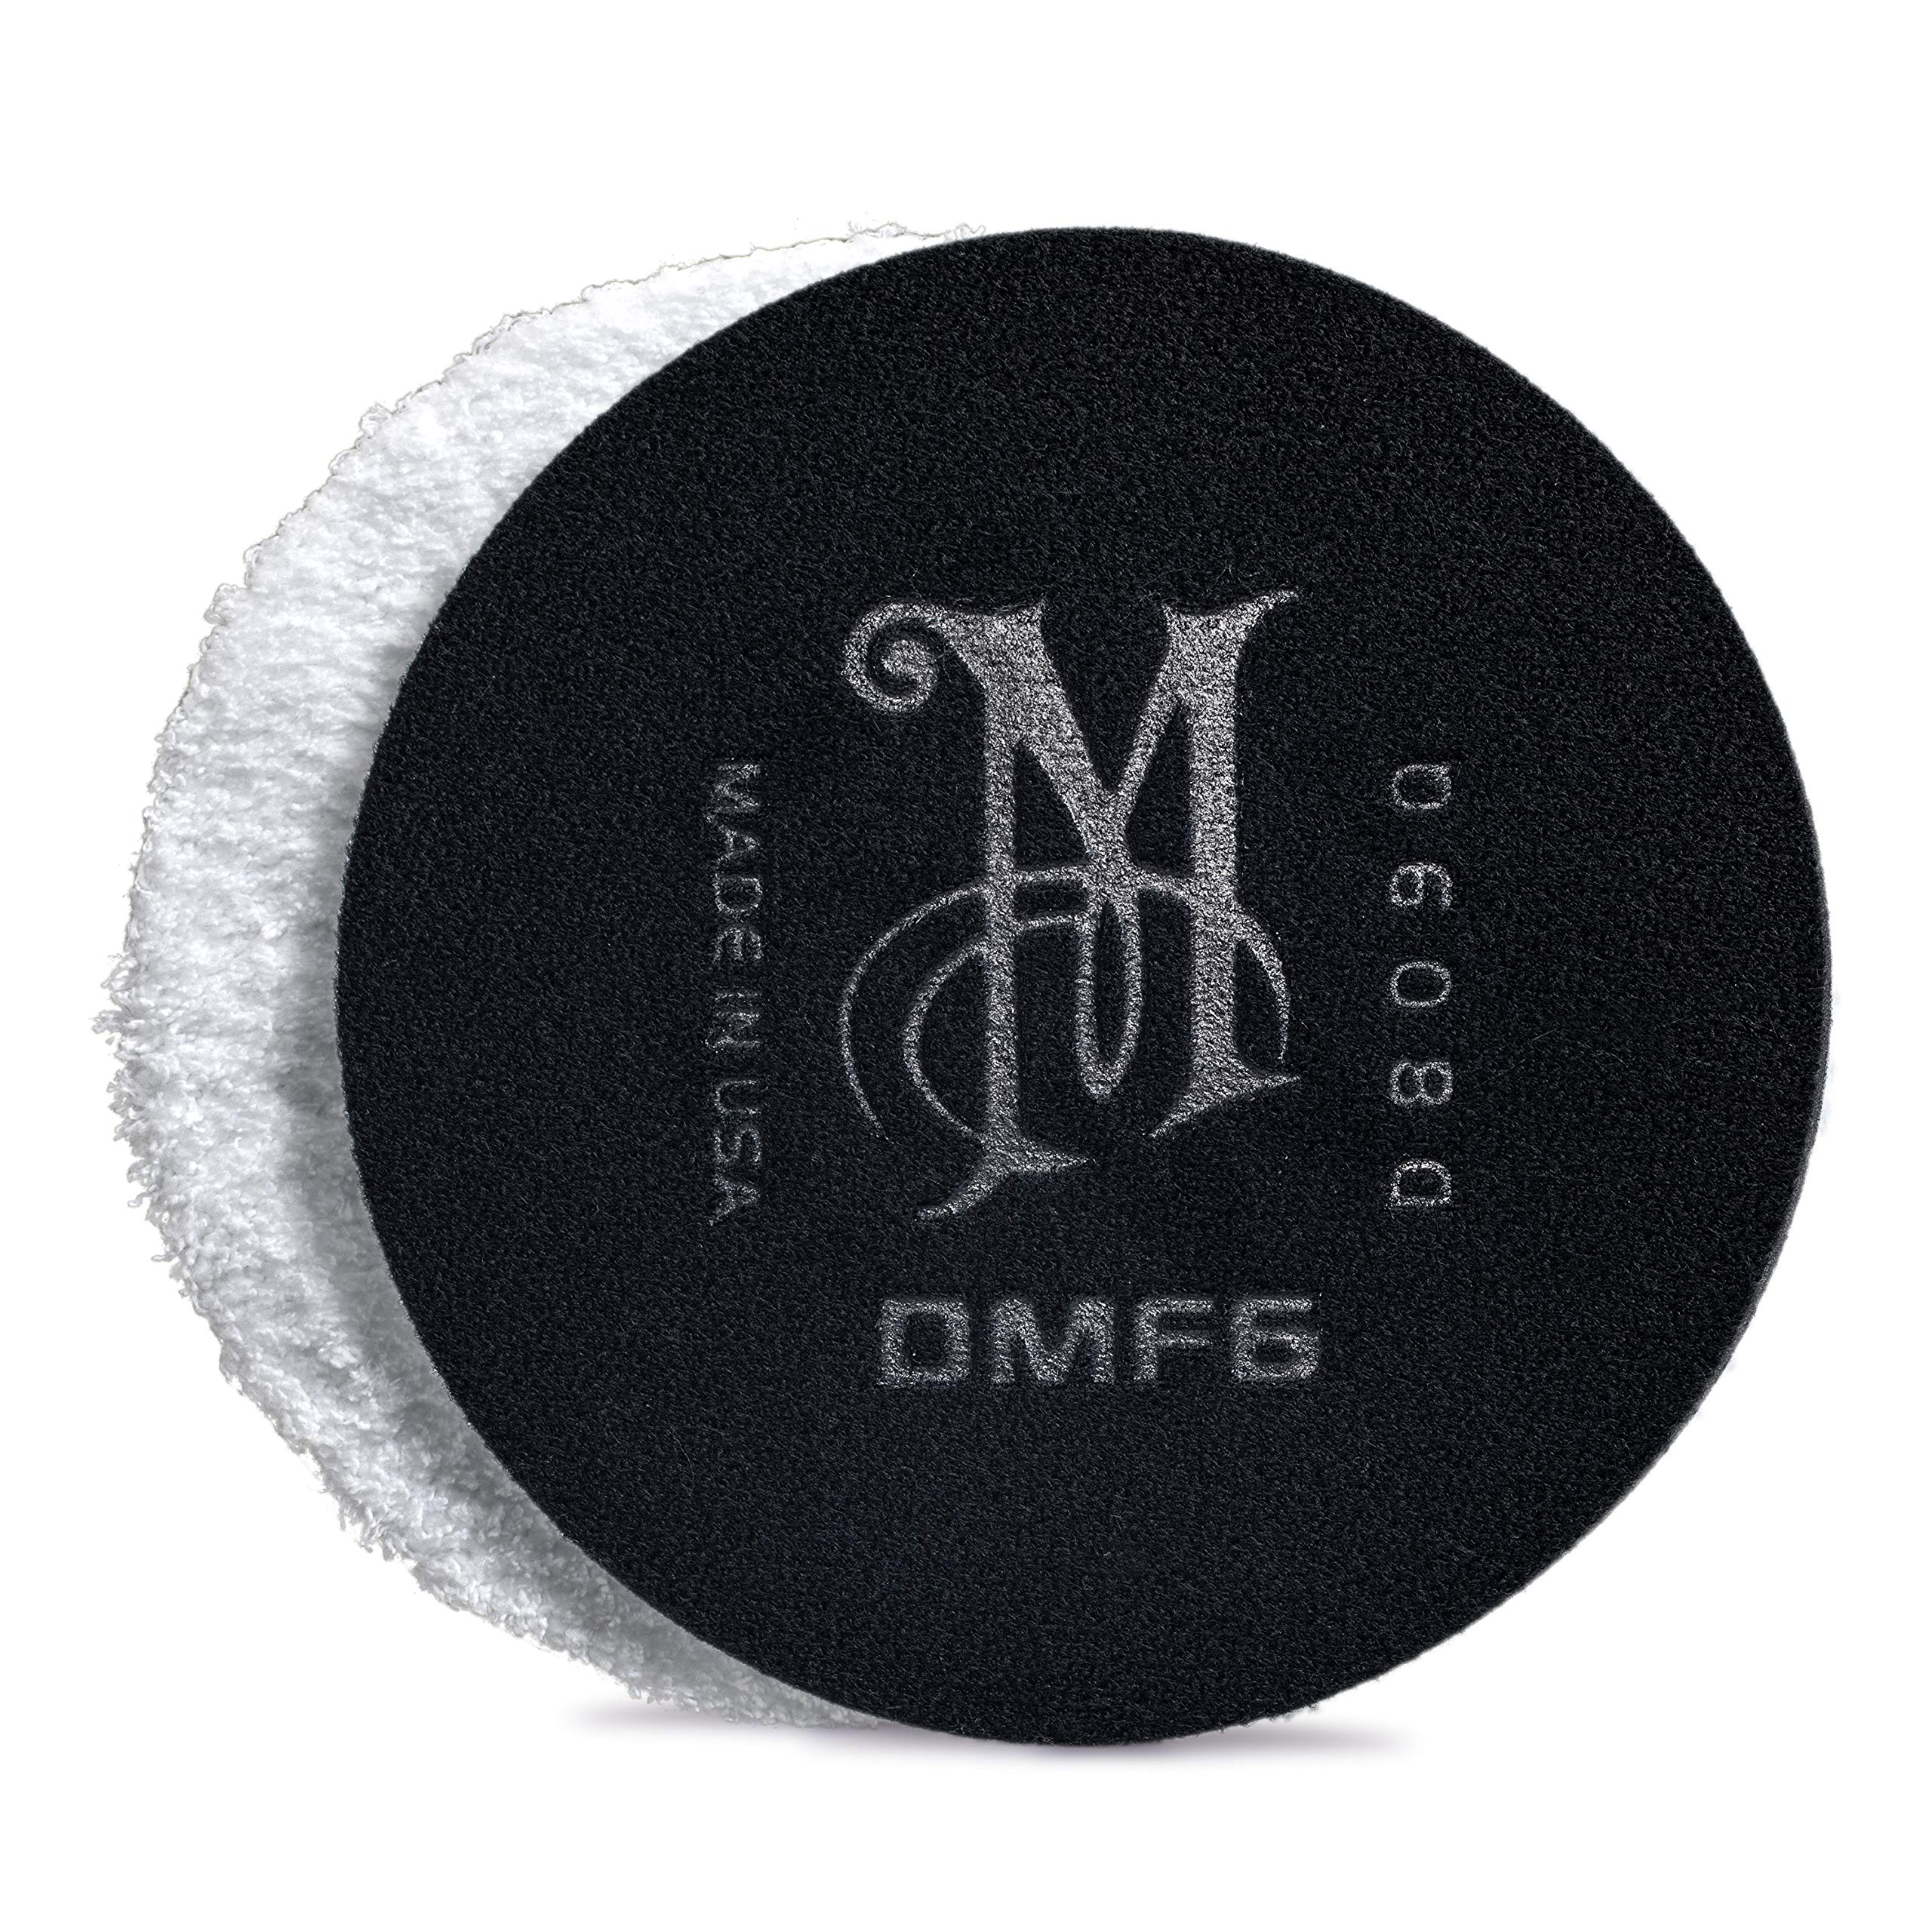 Meguiar's DMF6B DA 6'' Microfiber Finishing Disc, 12 Pack by Meguiar's (Image #2)